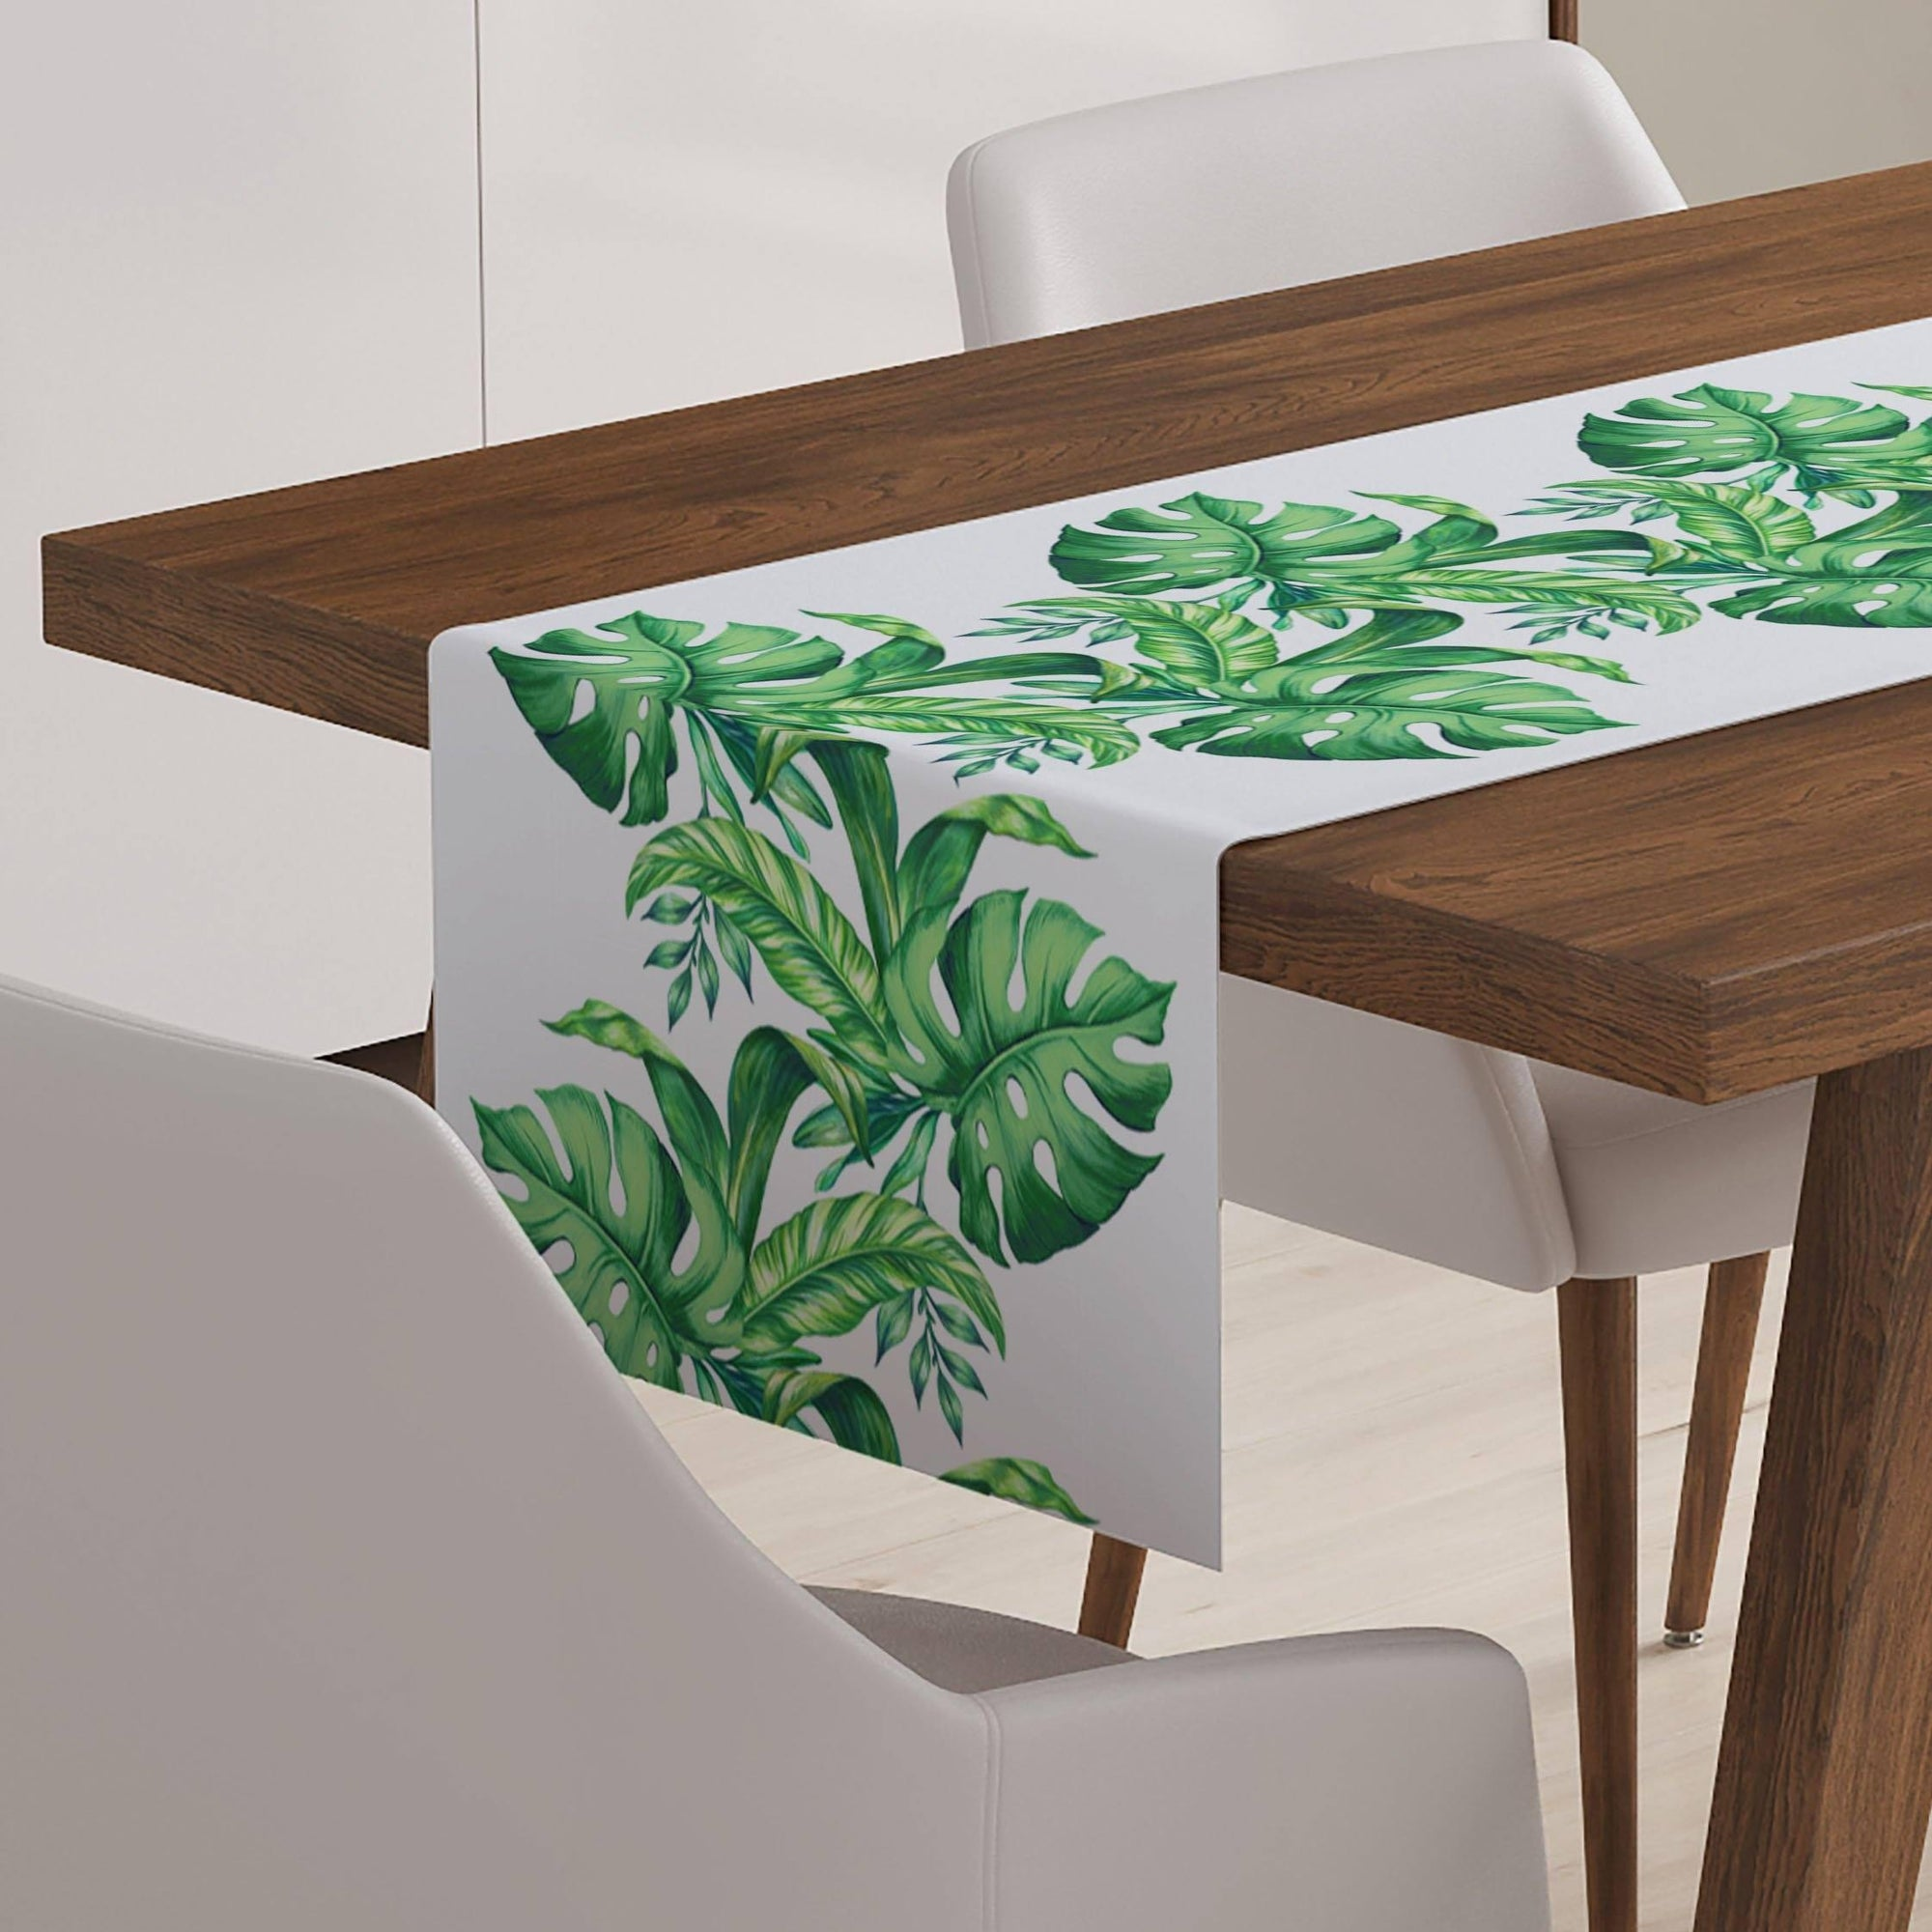 Botanical Table Runner - Table Runners - W.FRANCIS